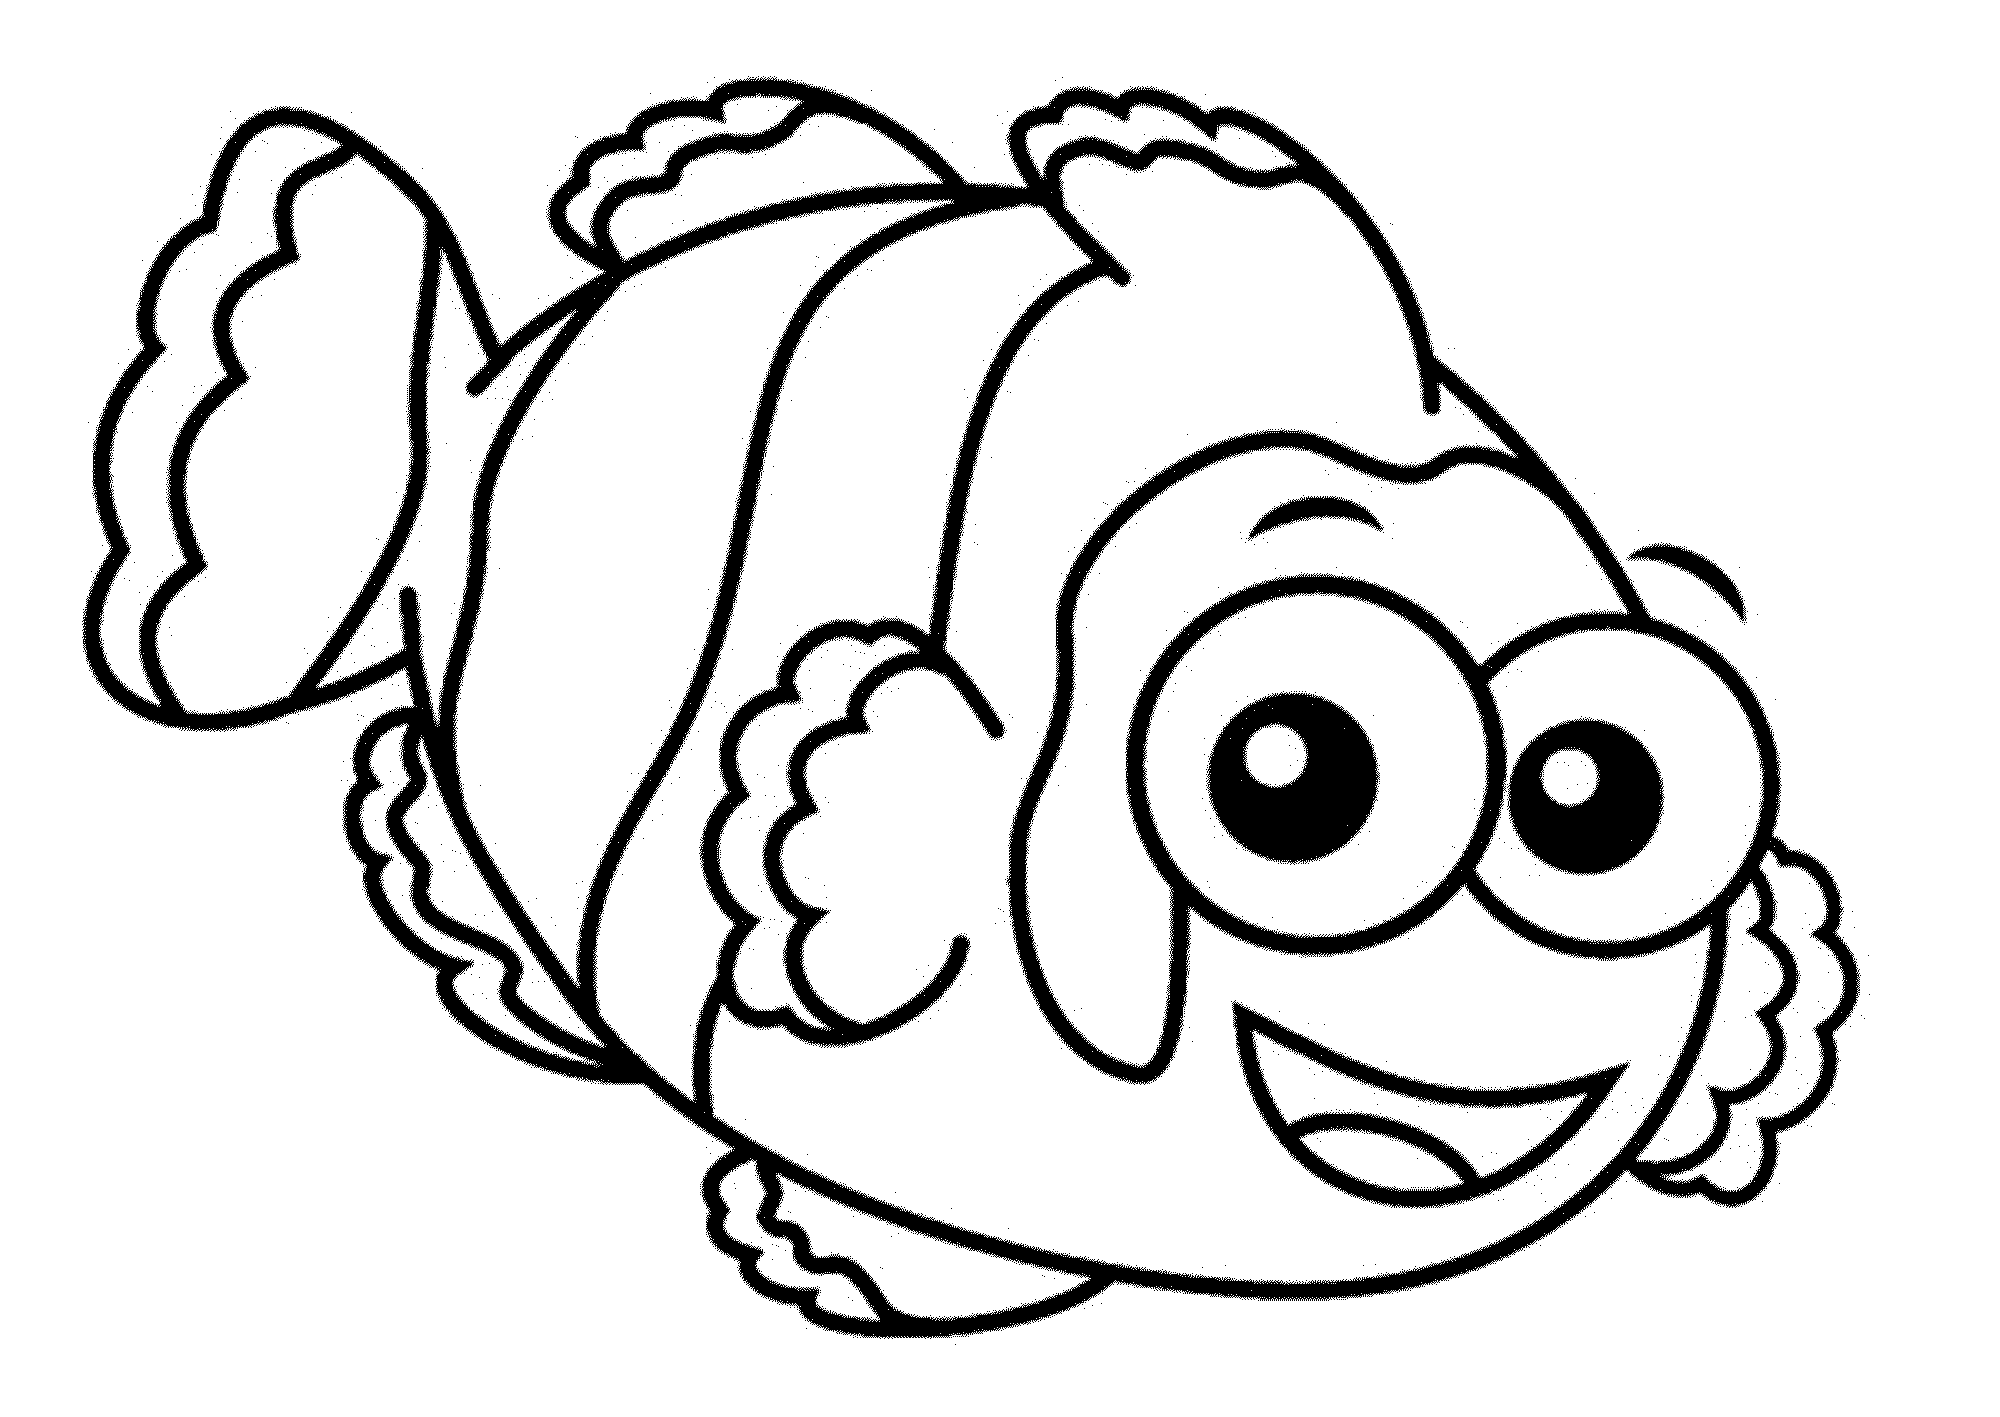 fish picture to color 8 fish coloring pages jpg ai illustrator free picture color to fish